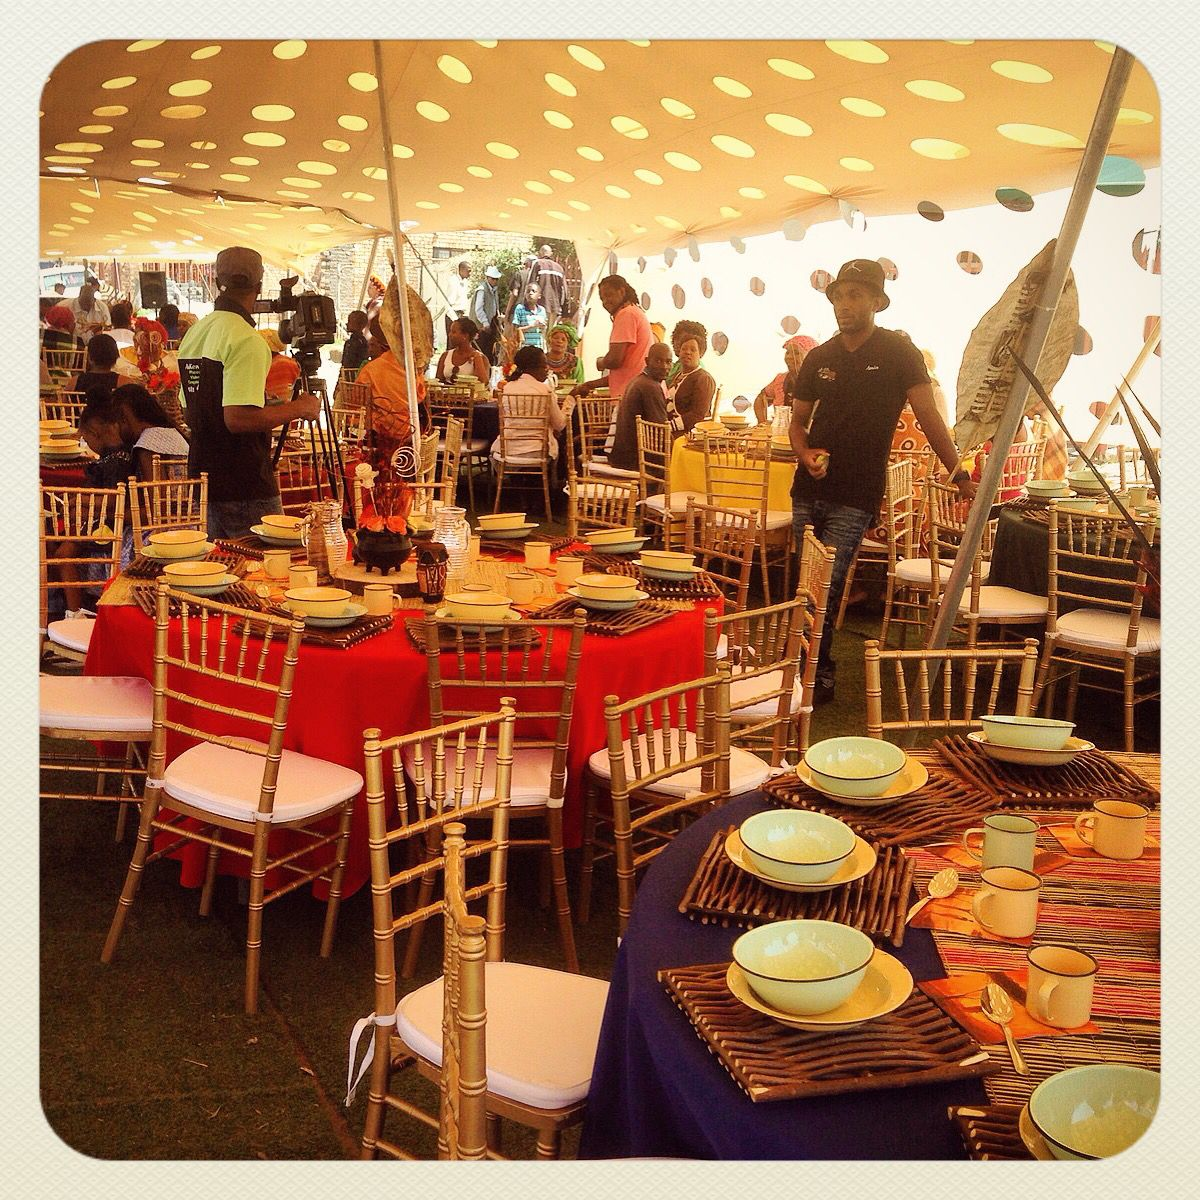 traditional african wedding centerpieces and decor. www.facebook